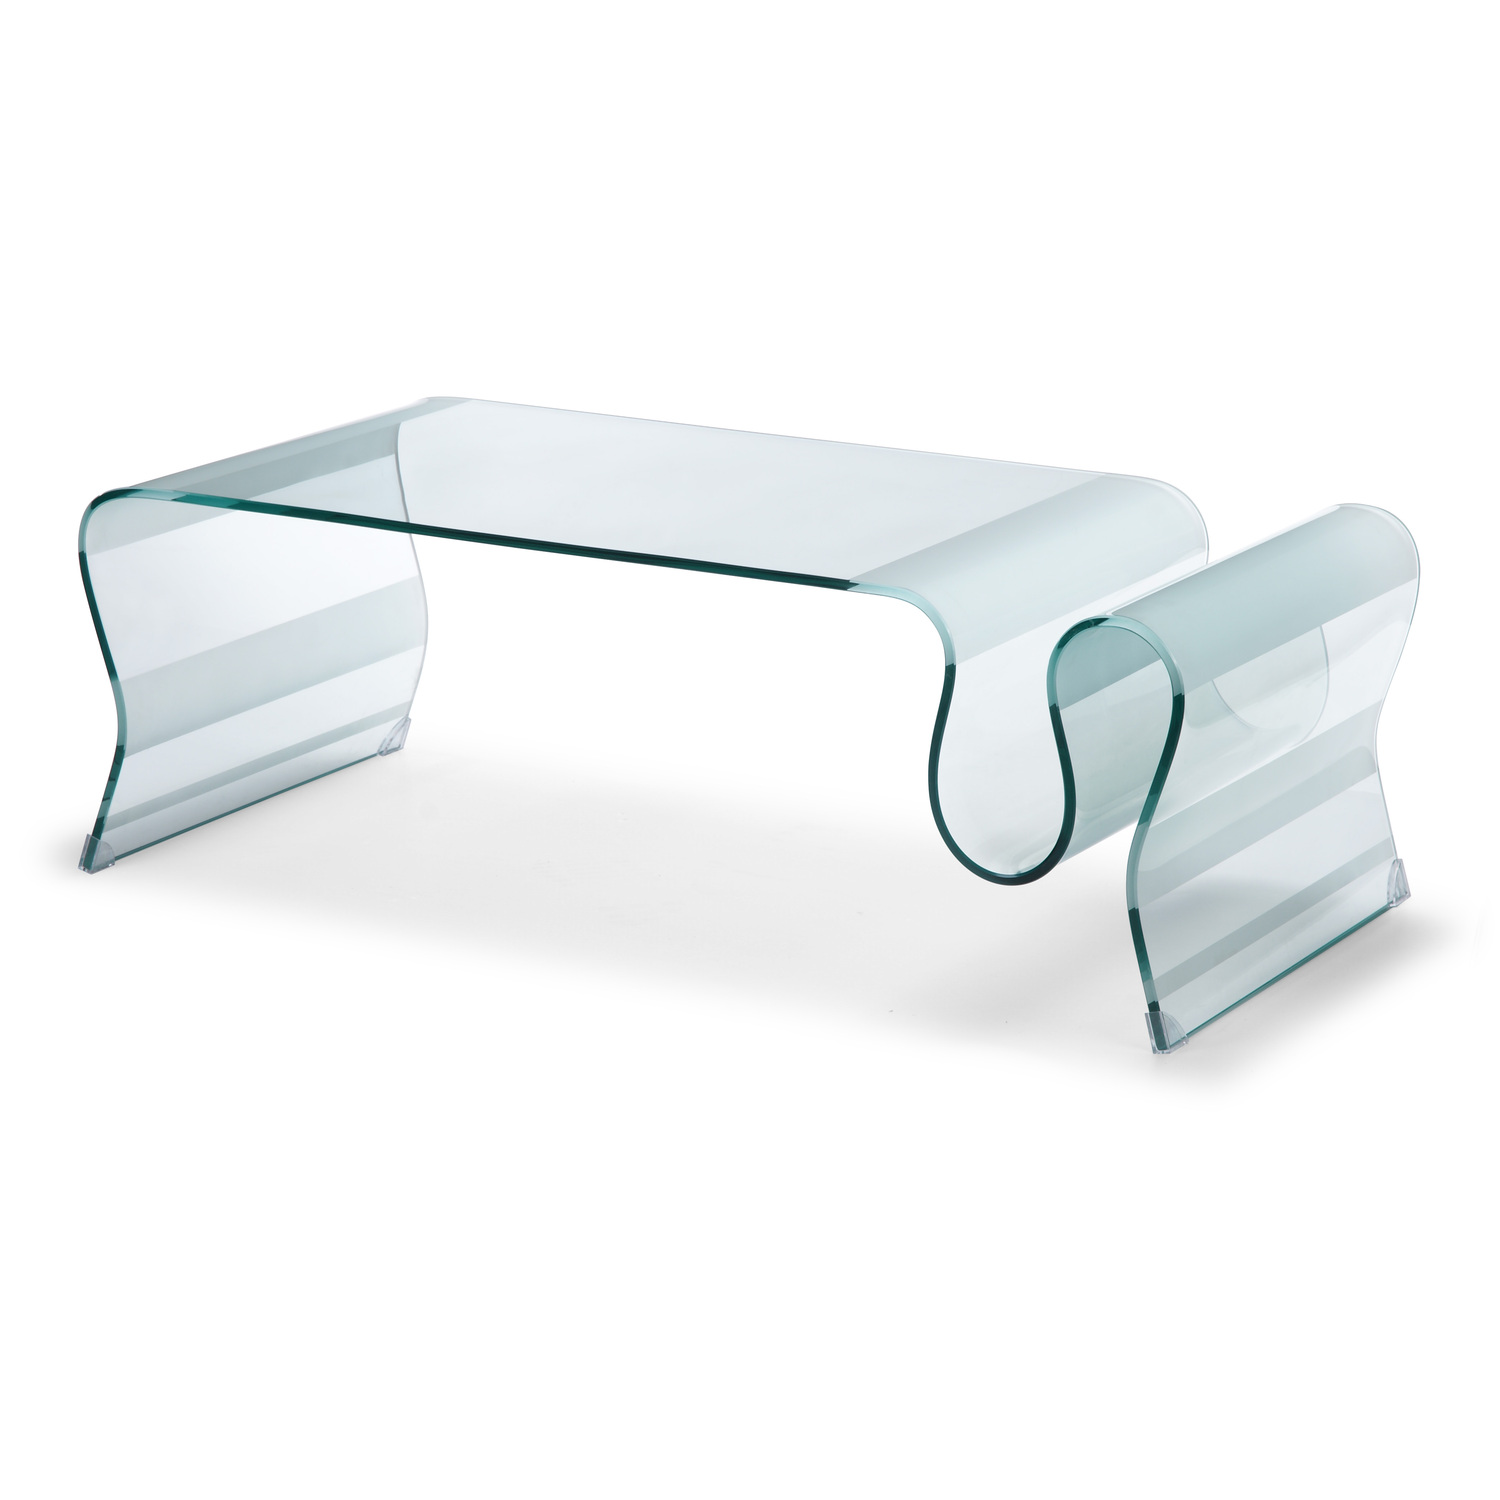 Glass Coffee Table Zuo Modern DISCOVERY COFFEE TABLE CLEAR GLASS